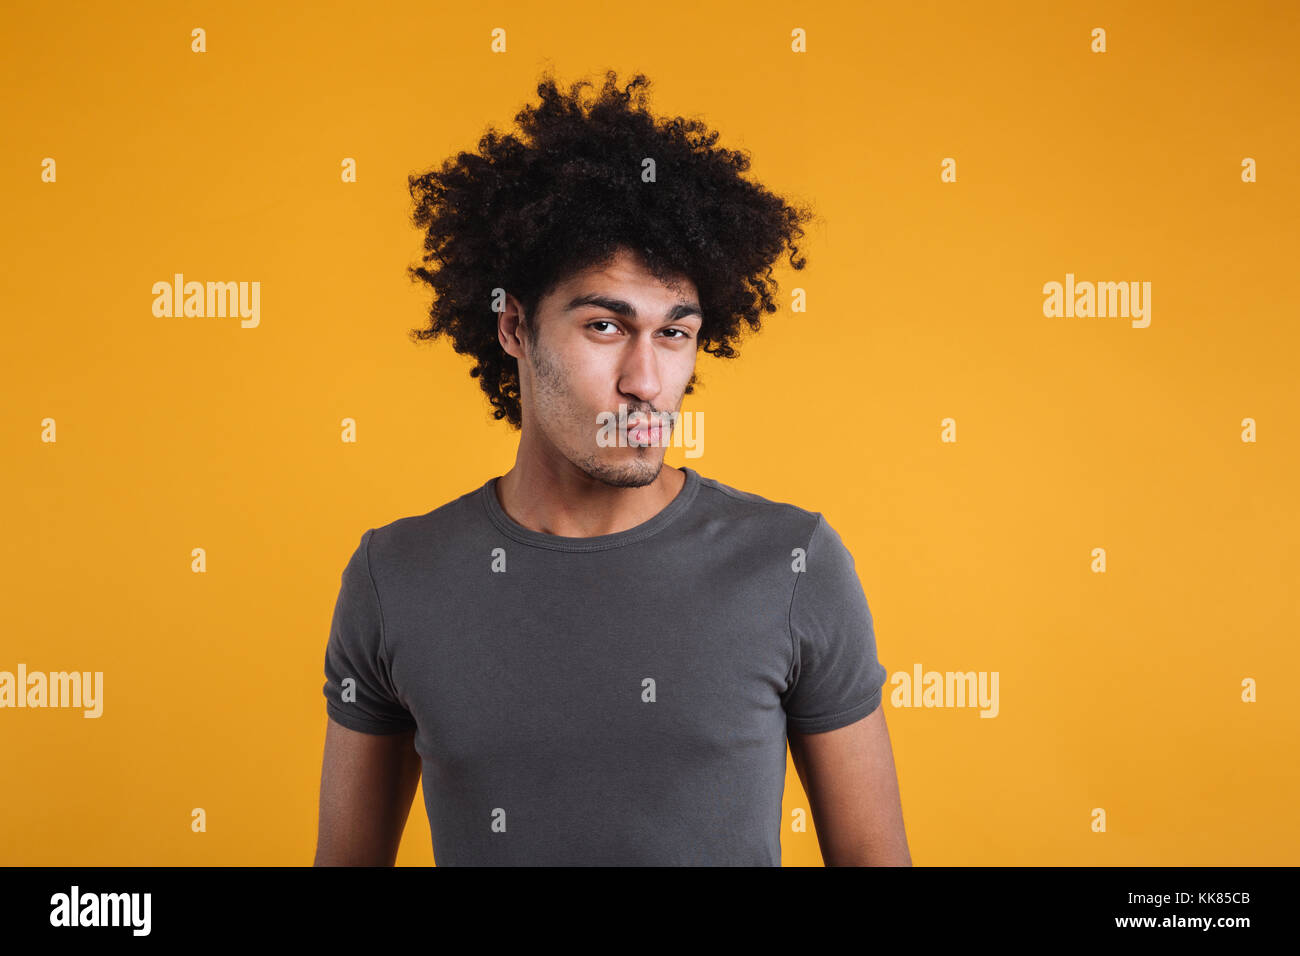 Portrait of a funny young afro american man looking at camera and grimacing isolated over orange background - Stock Image